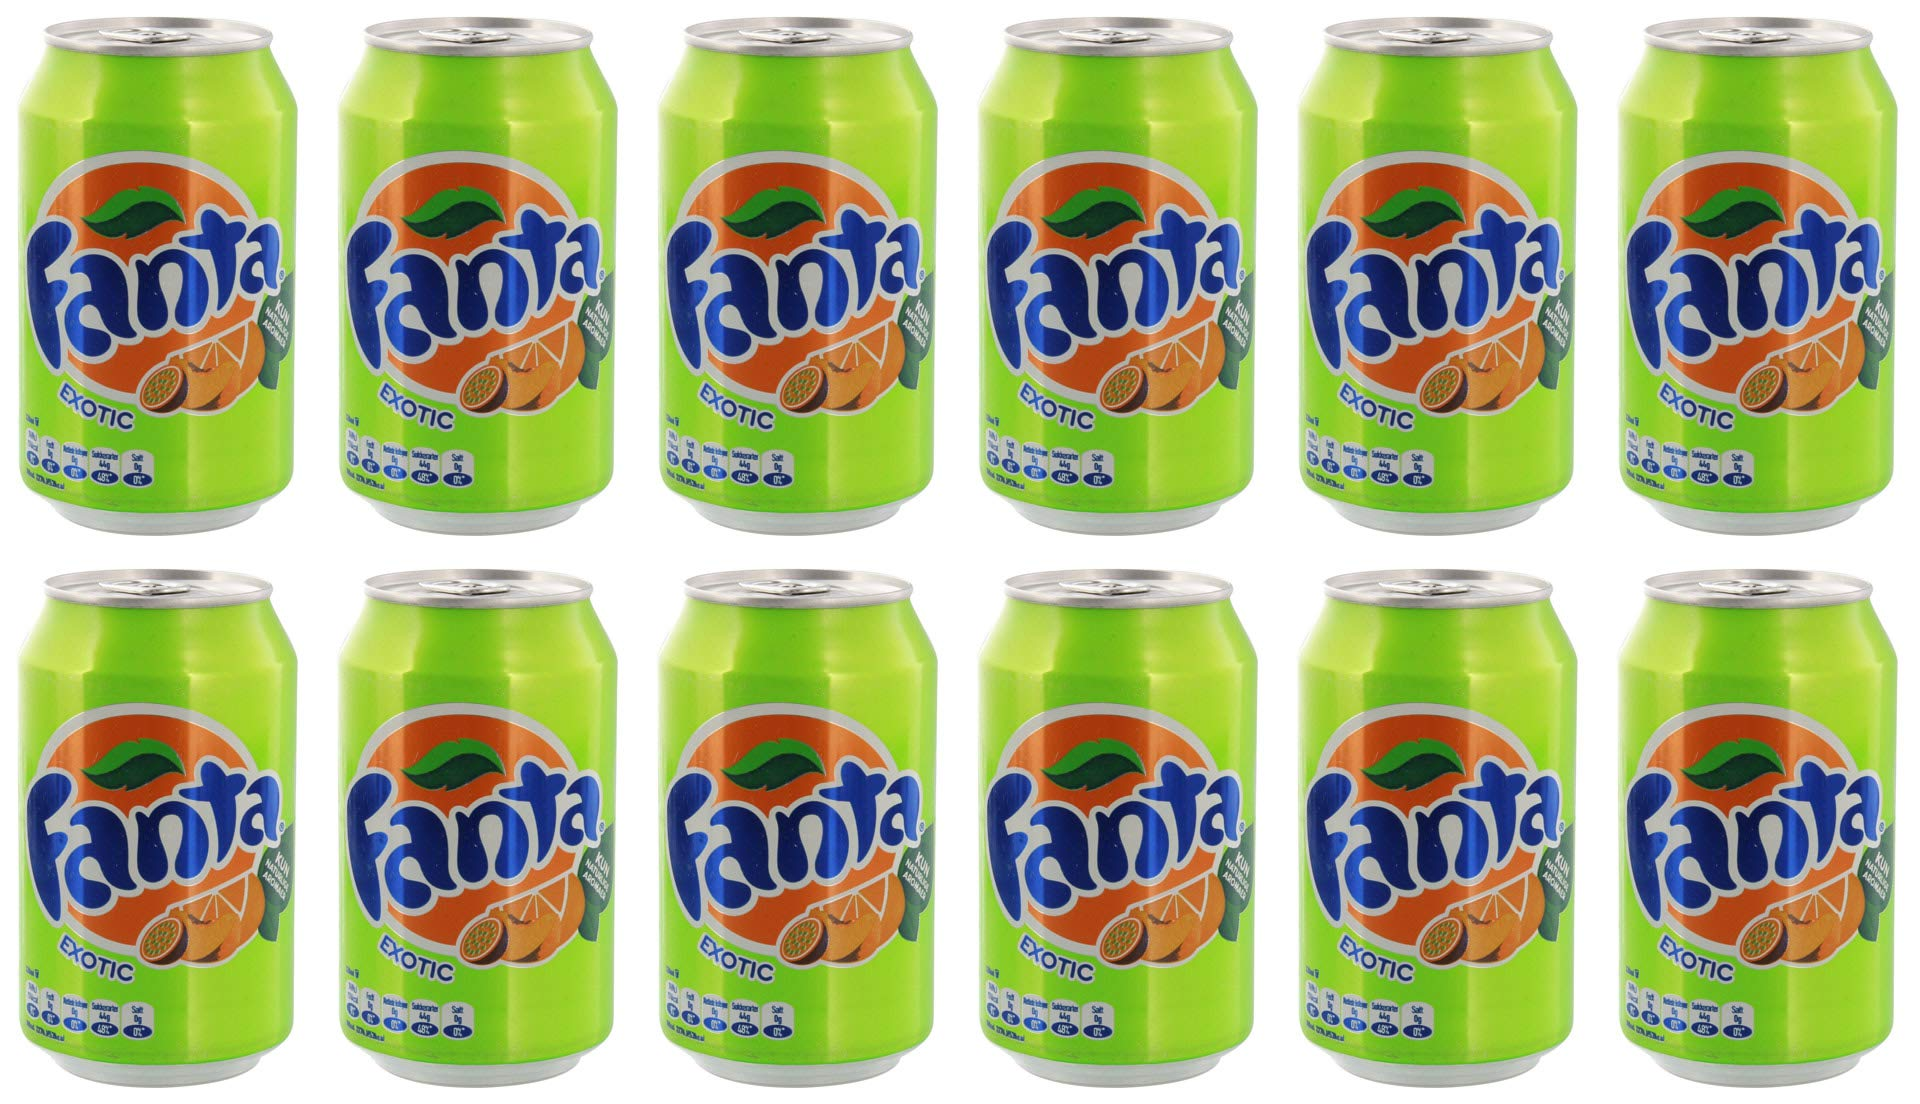 Fanta Exotic 330ml - 12 Pack